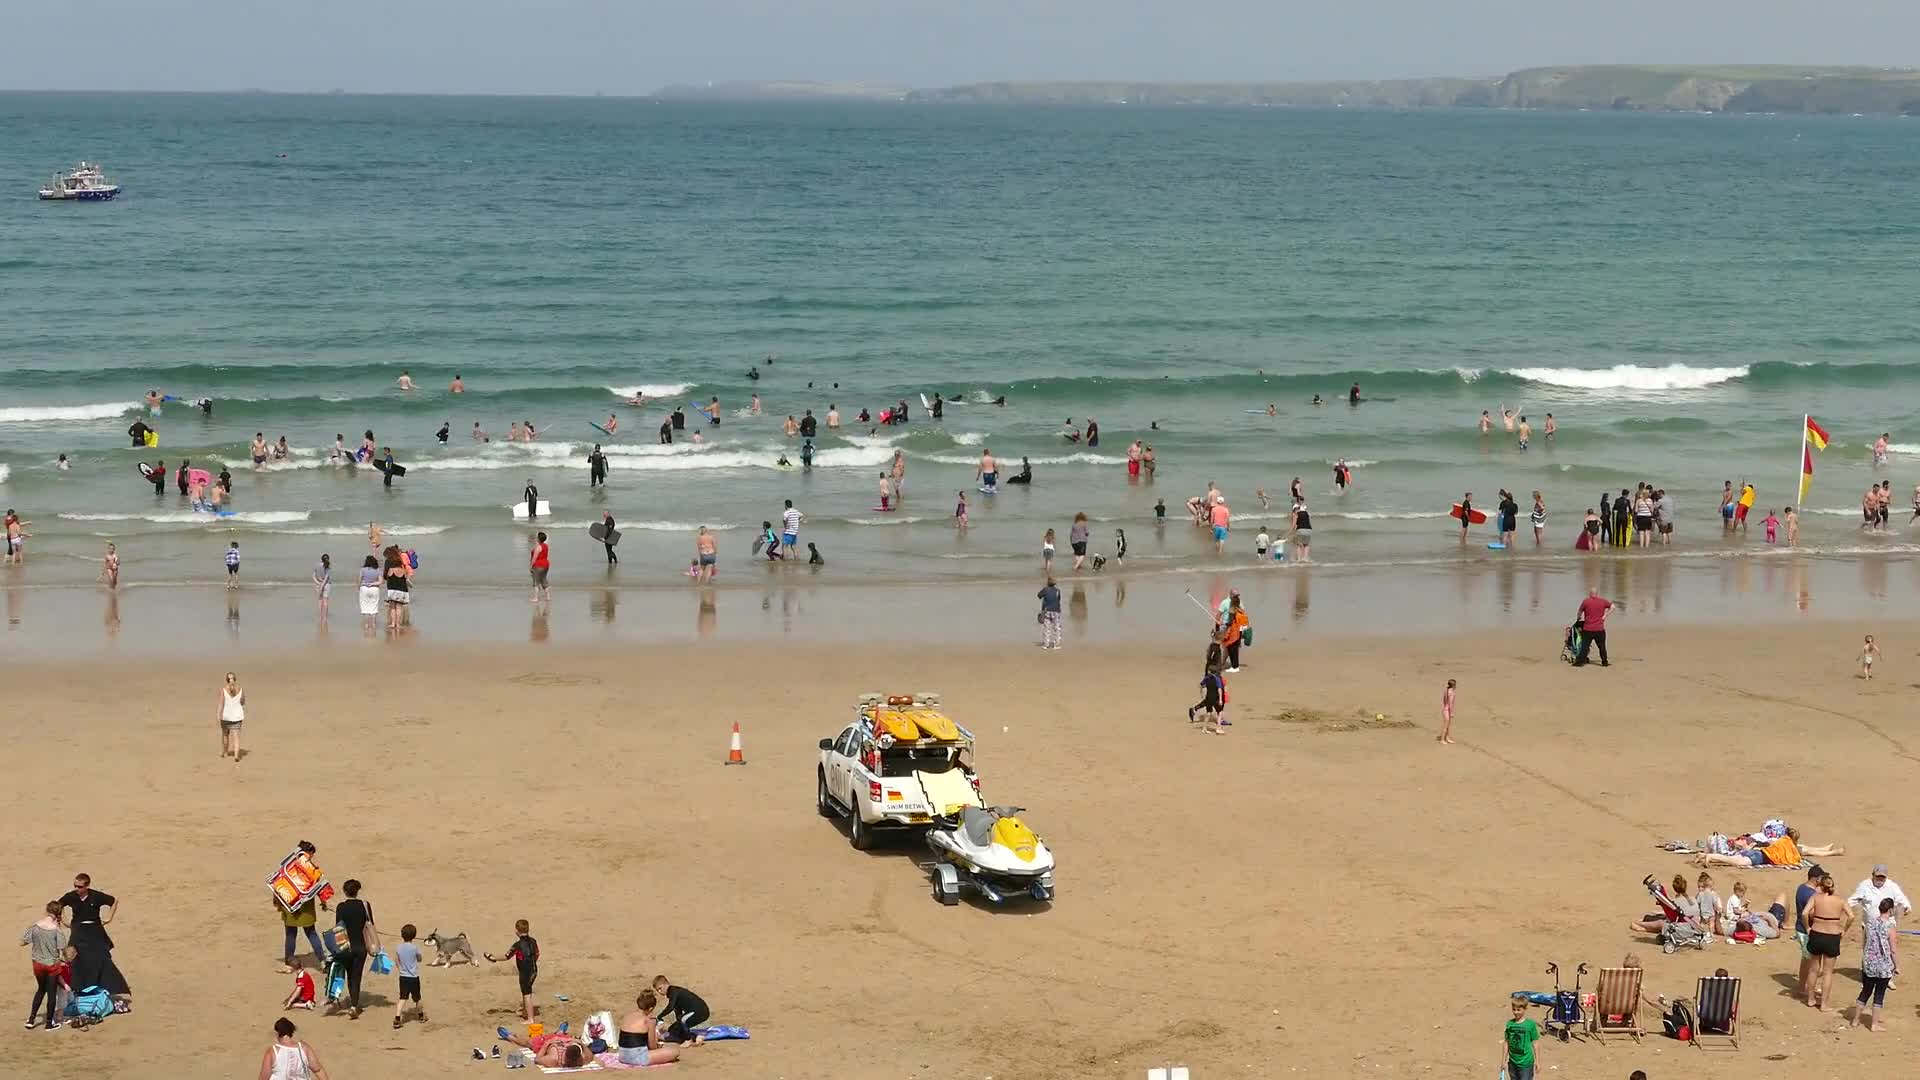 Cornwall newquay england sea beach